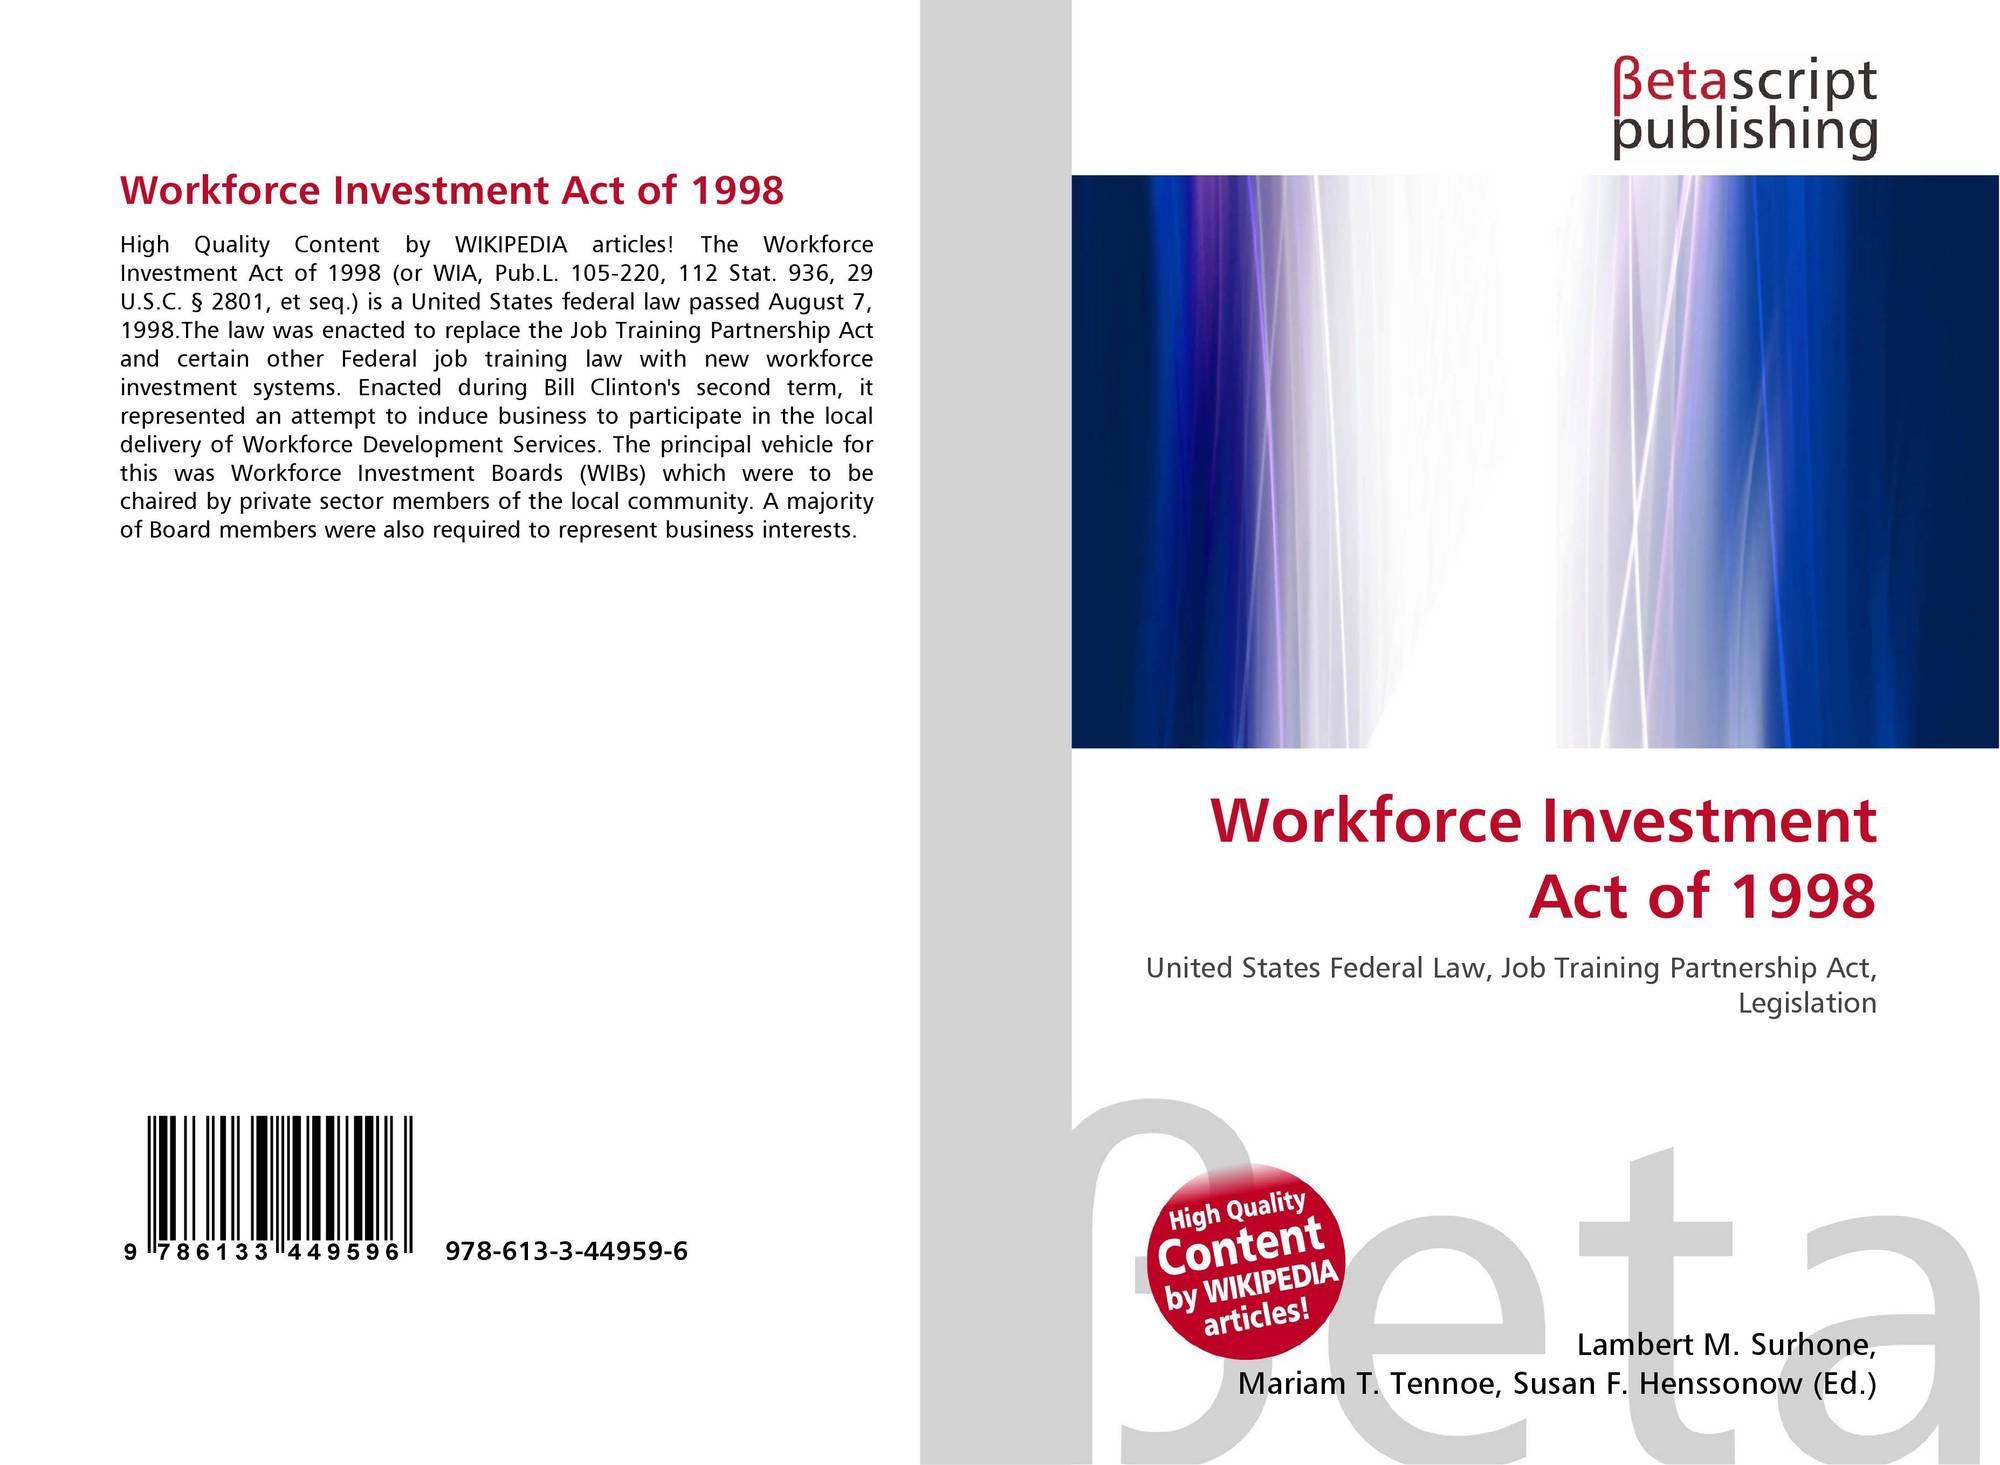 The workforce investment act of 1998 dalian hexing investment